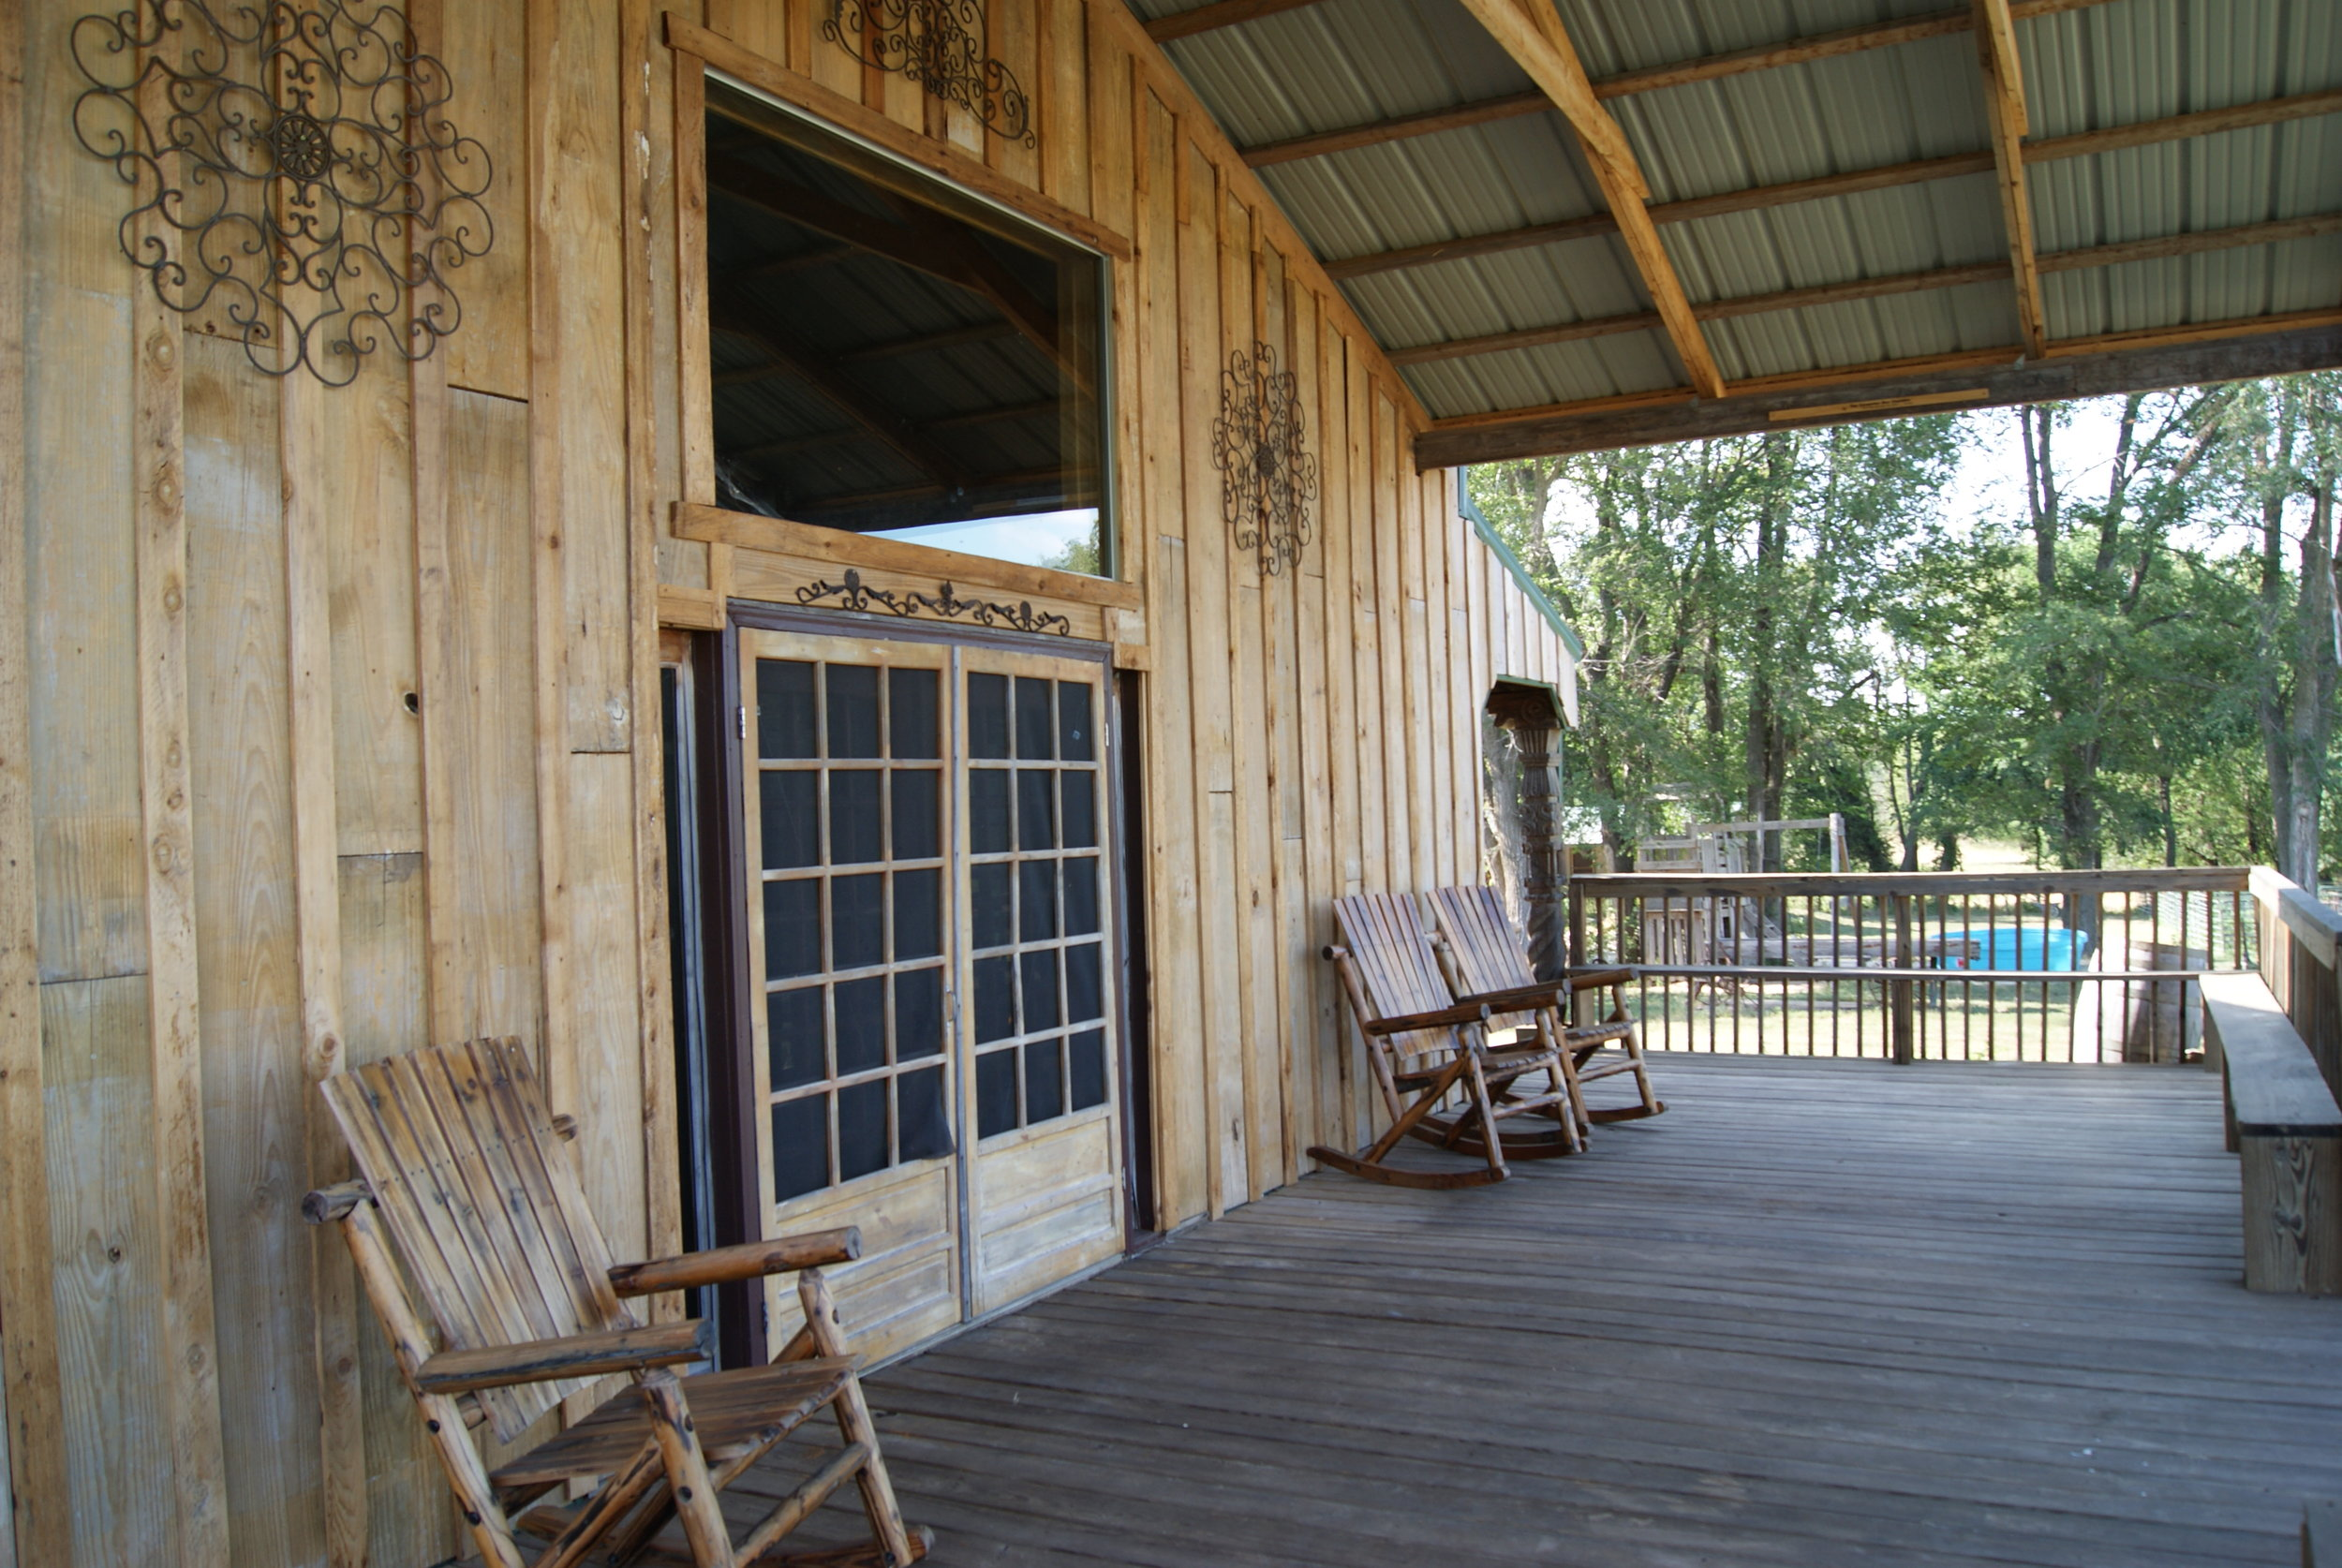 The Lodge East porch